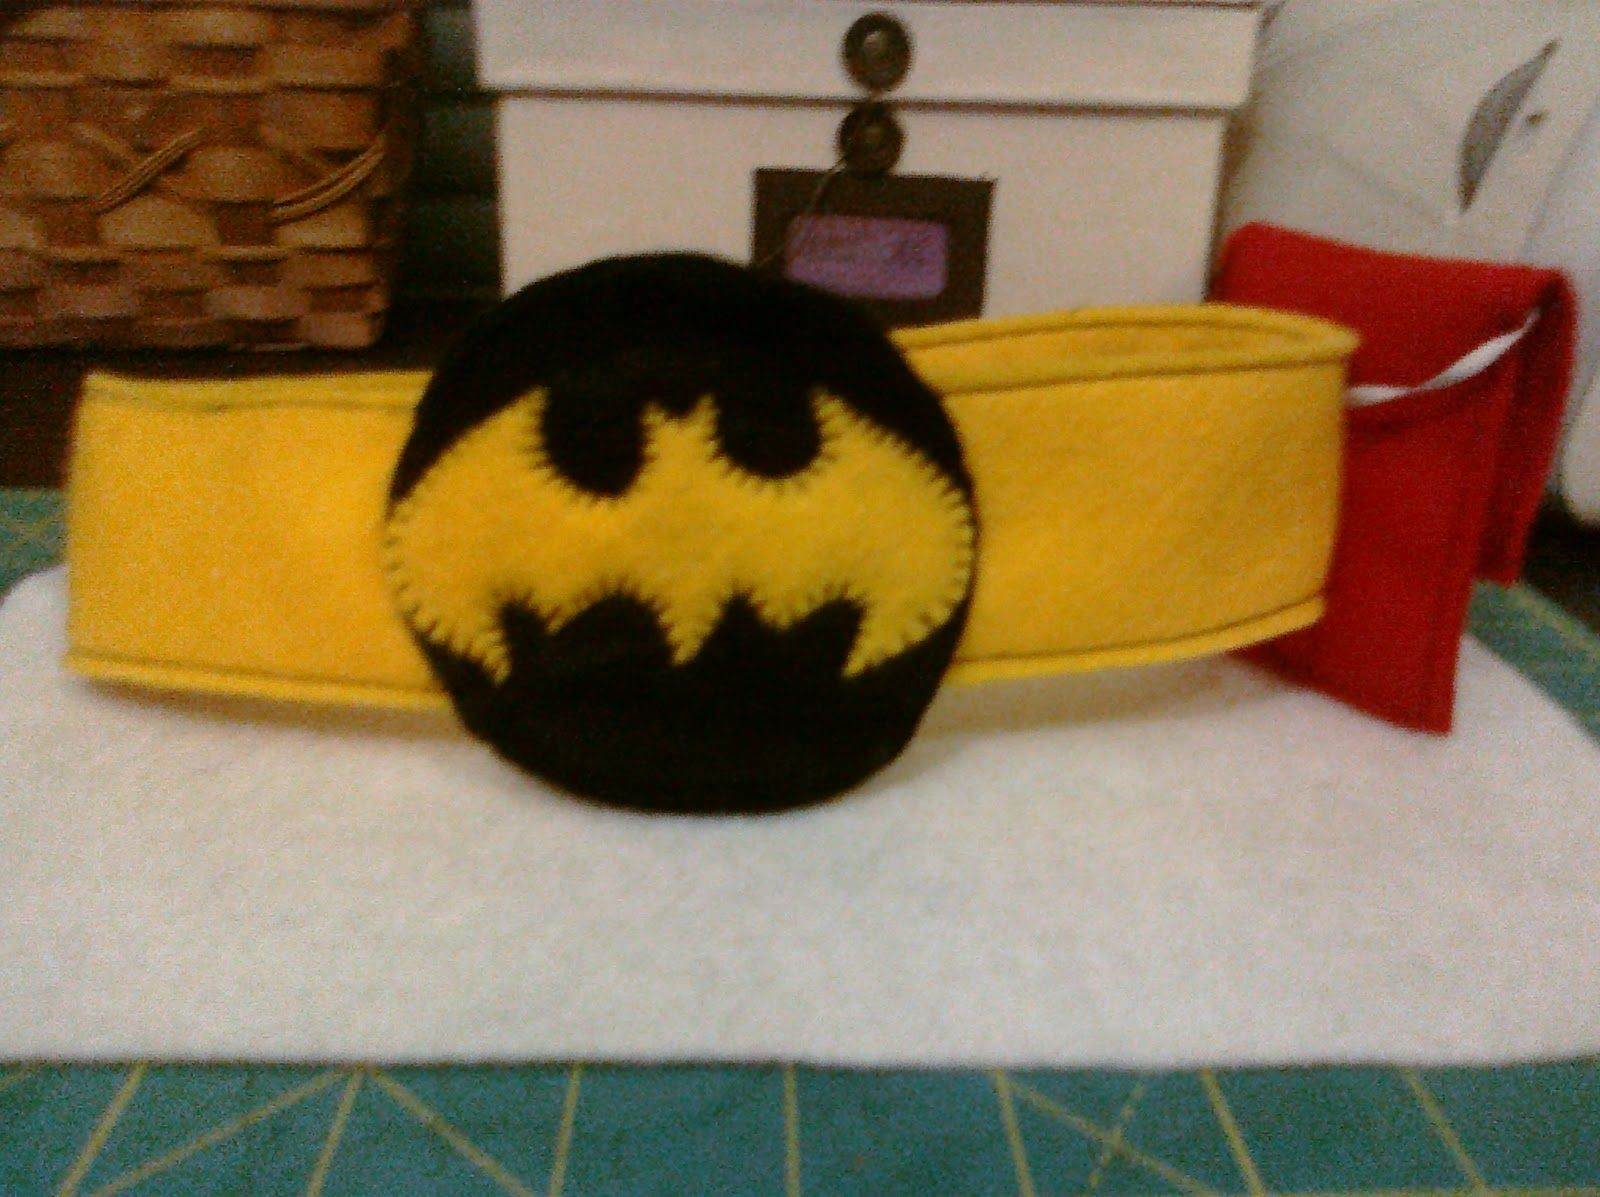 Diy Batman Utility Belt And Mask Oh This Looks Really Simple Could Probably Alter To